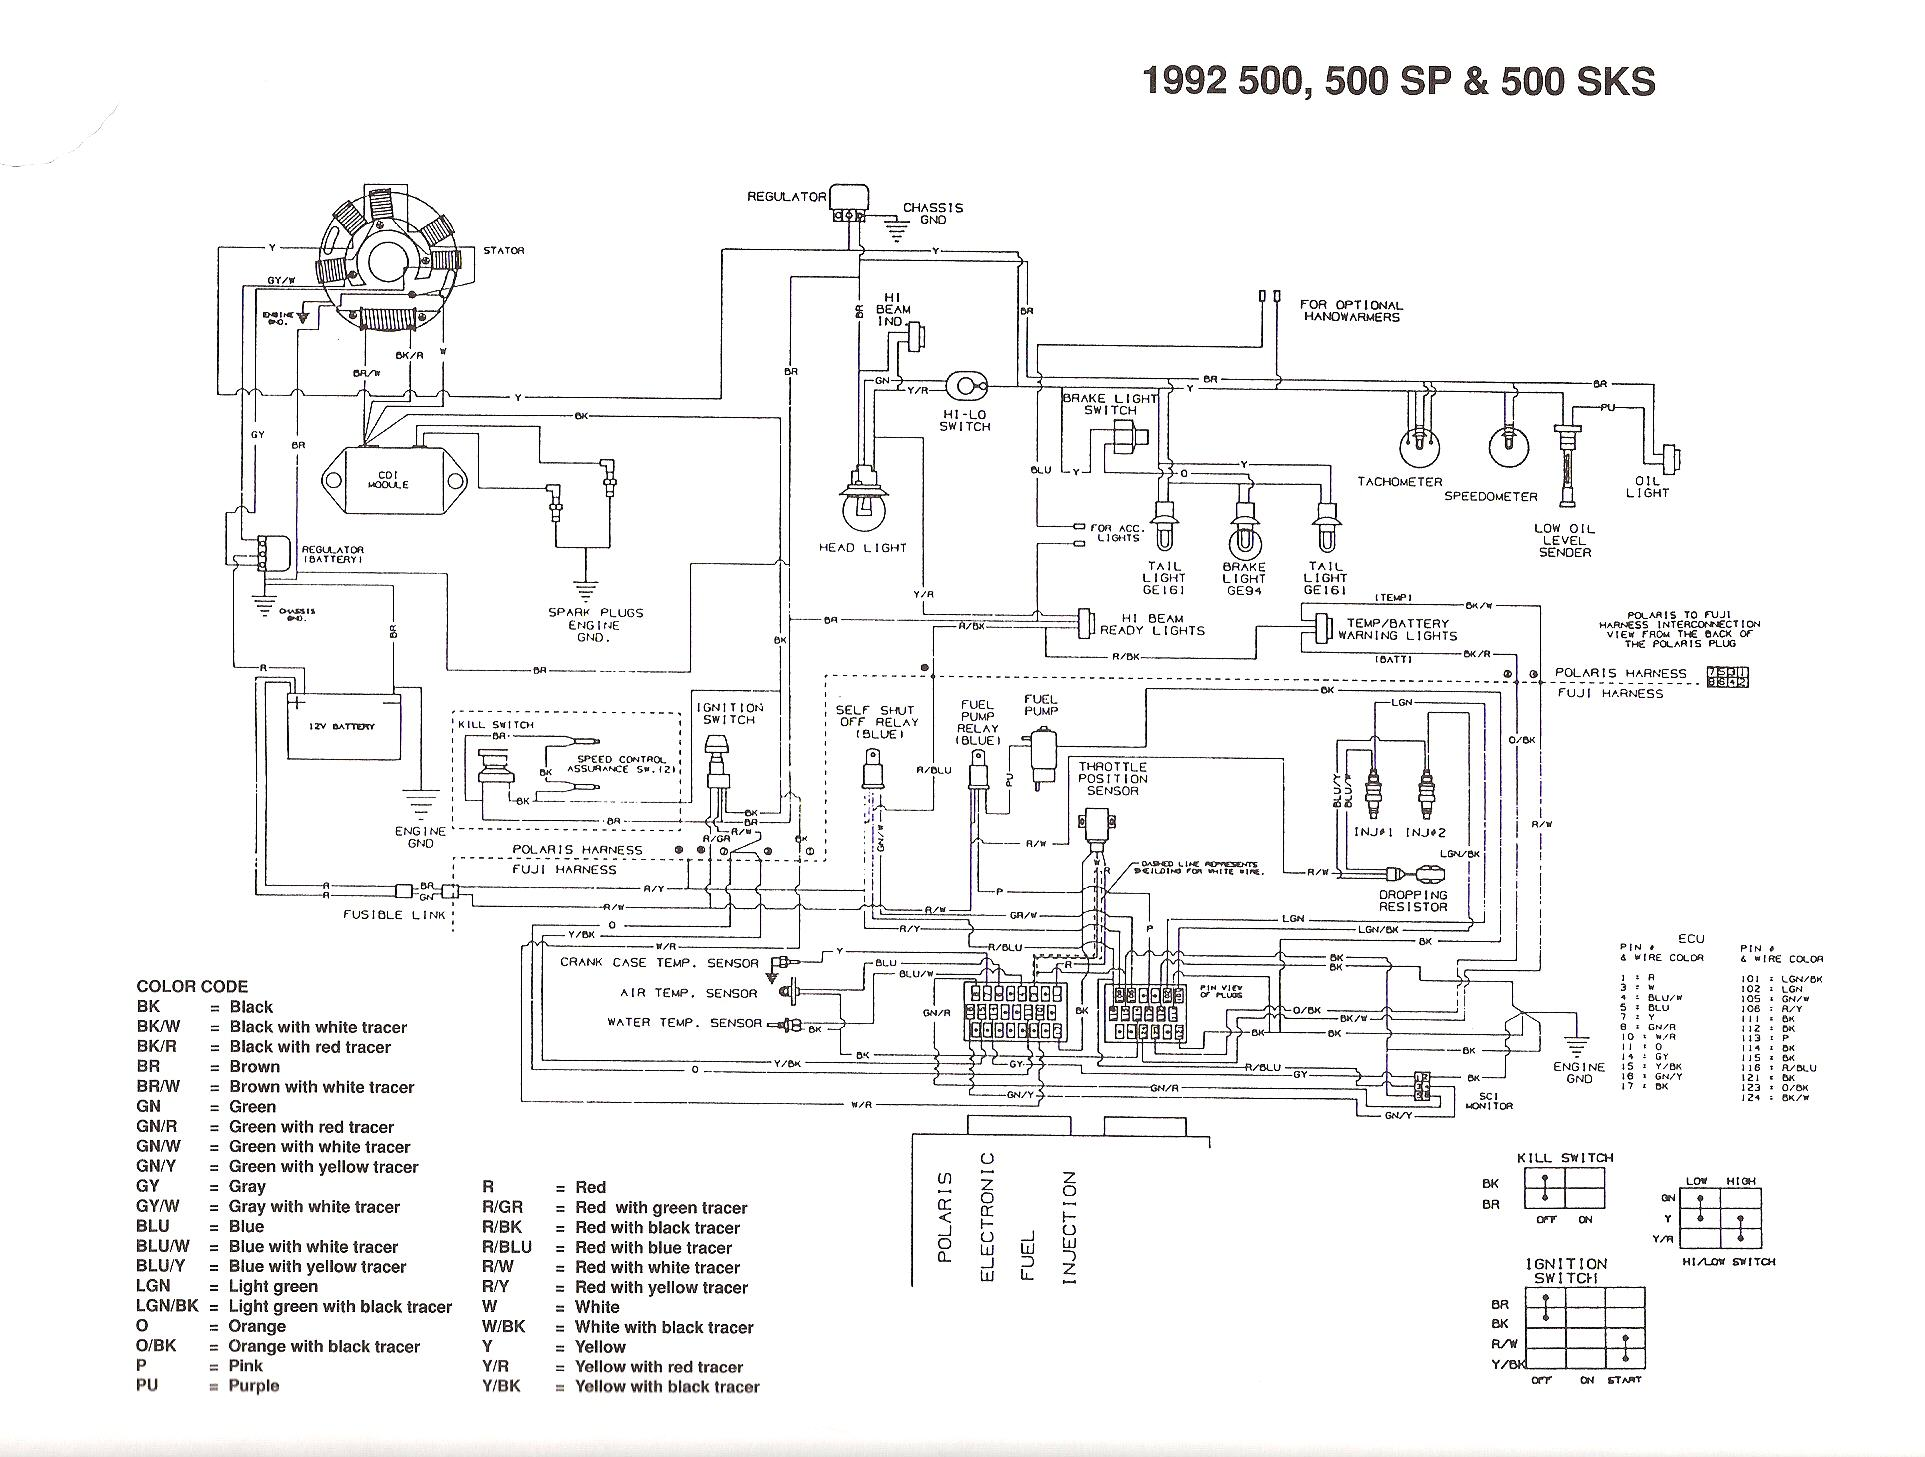 hight resolution of polaris indy 500 wiring diagram wiring diagrams konsult indy polaris sportsman 500 wiring diagram 1991